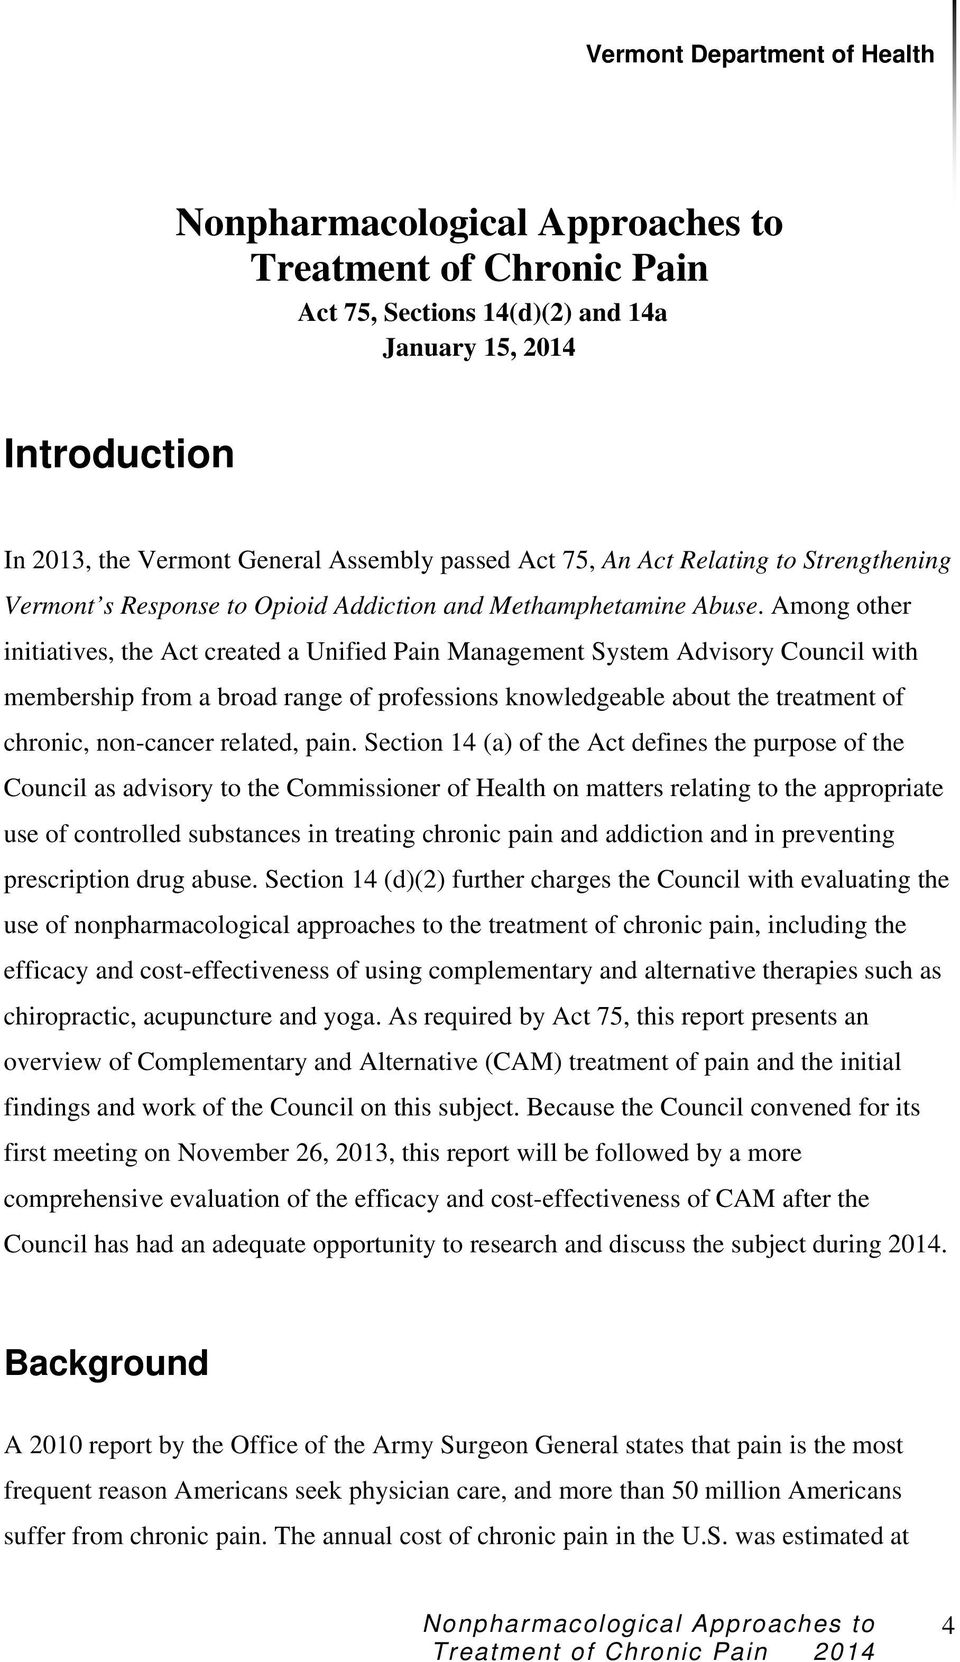 Among other initiatives, the Act created a Unified Pain Management System Advisory Council with membership from a broad range of professions knowledgeable about the treatment of chronic, non-cancer